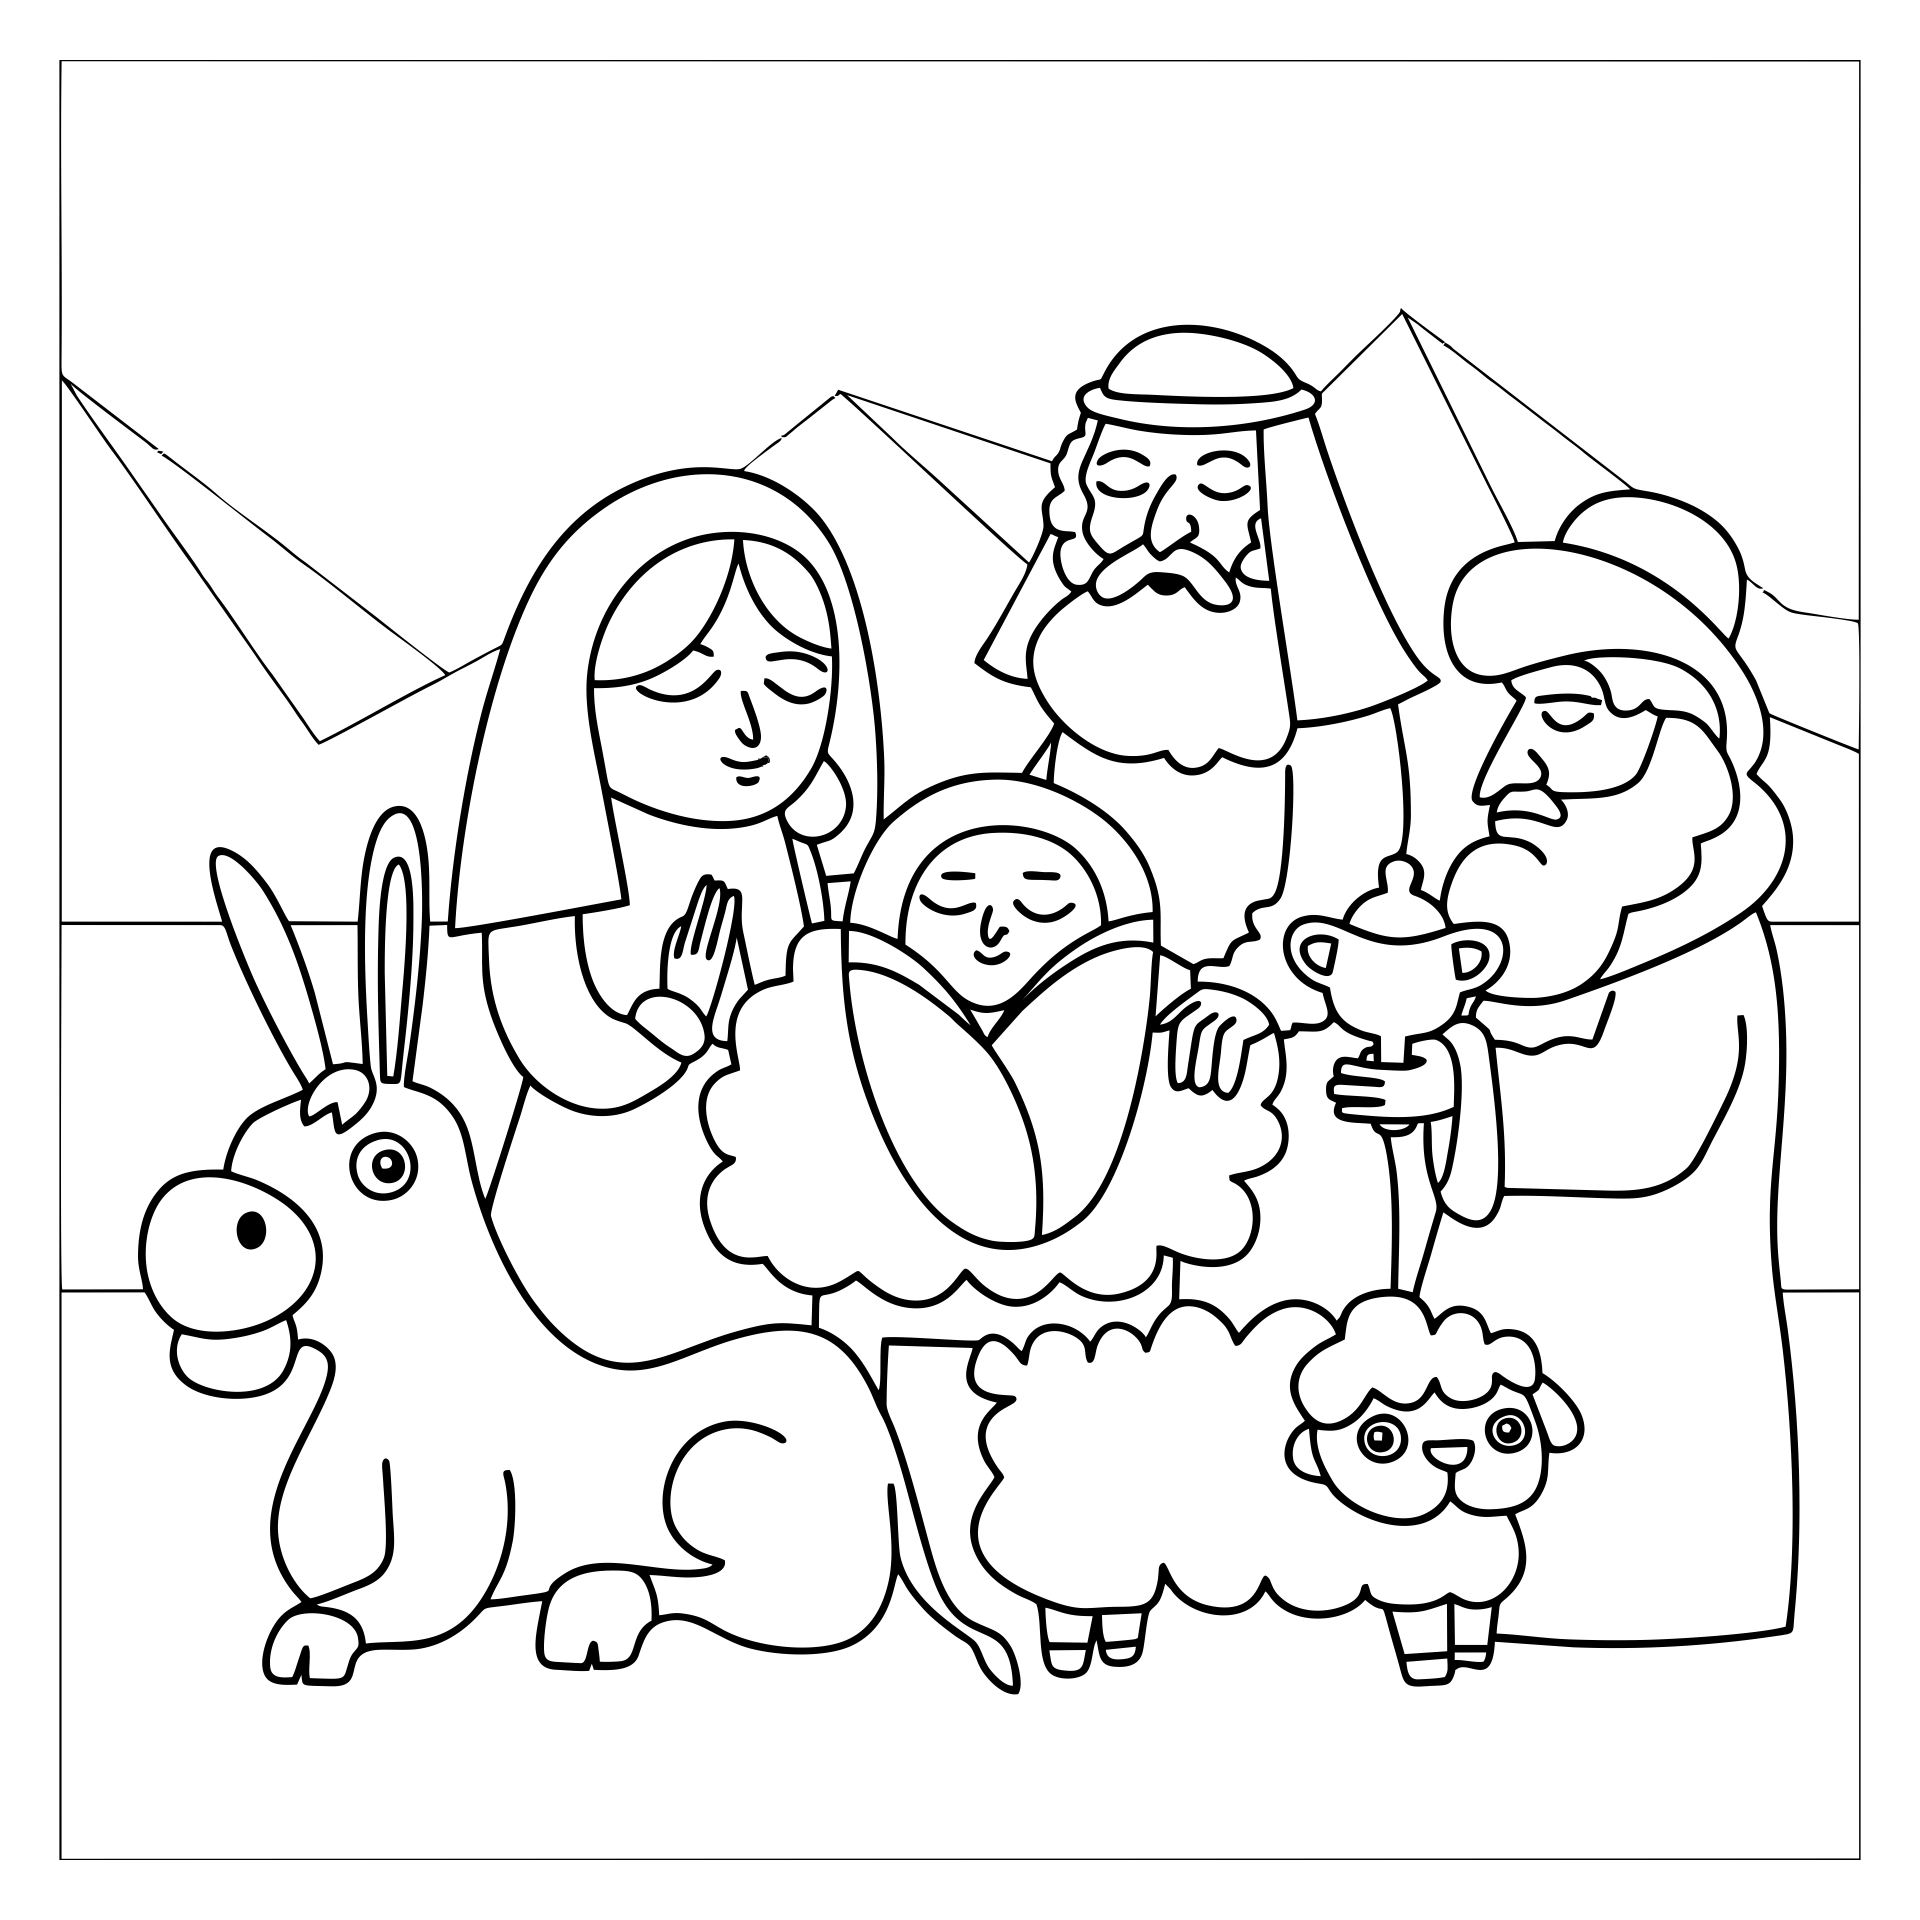 7 Best Images of Nativity Story Printable Book Printable ...